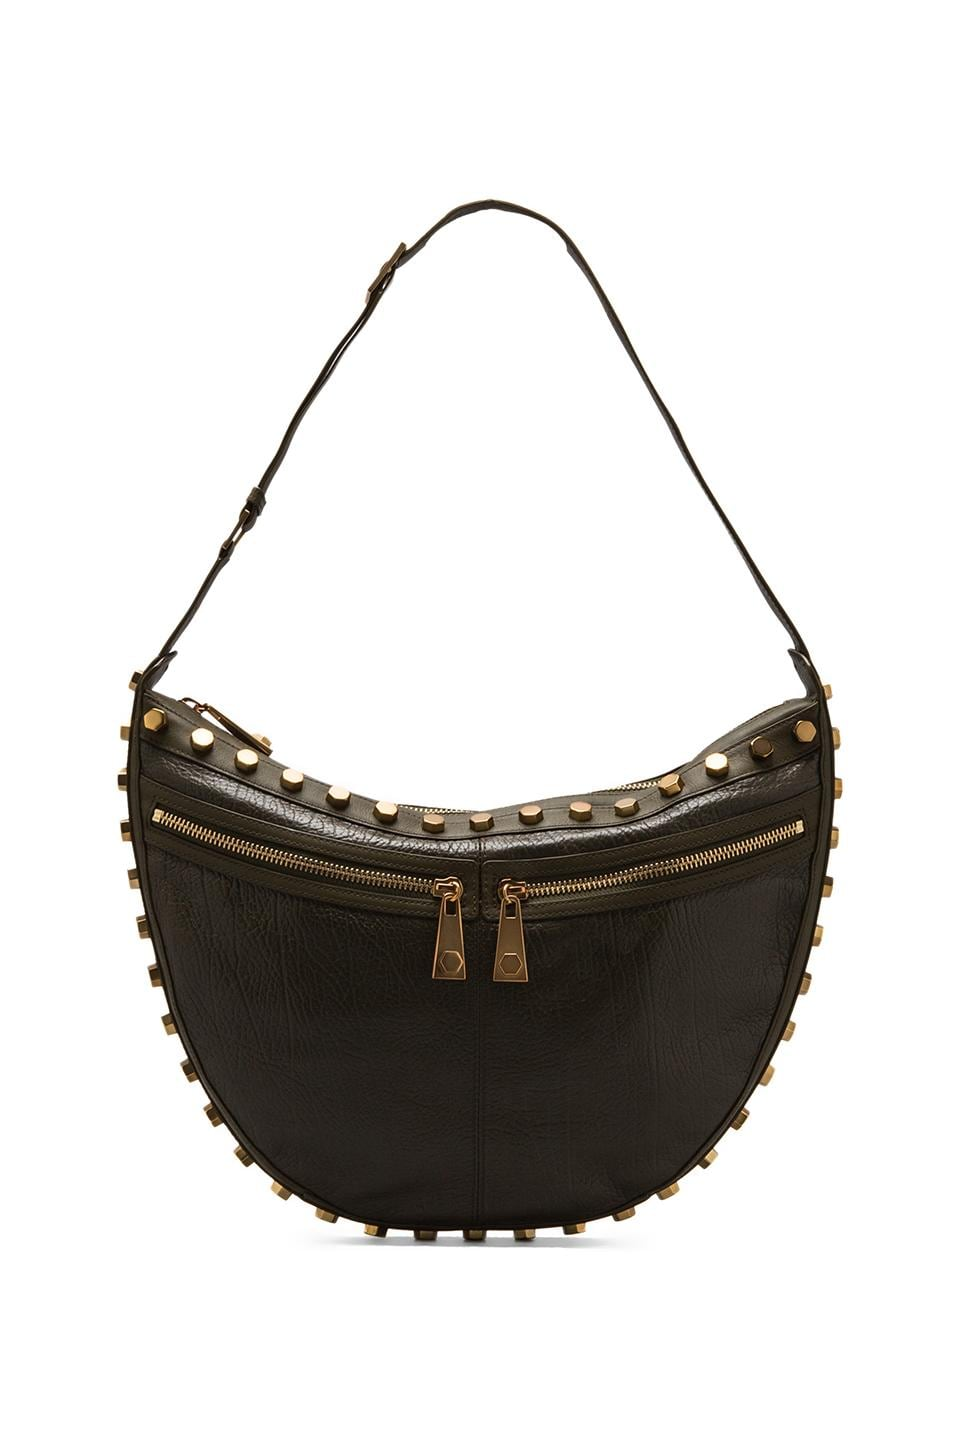 Nanette Lepore Over the Moon Bag in Olive/Gold